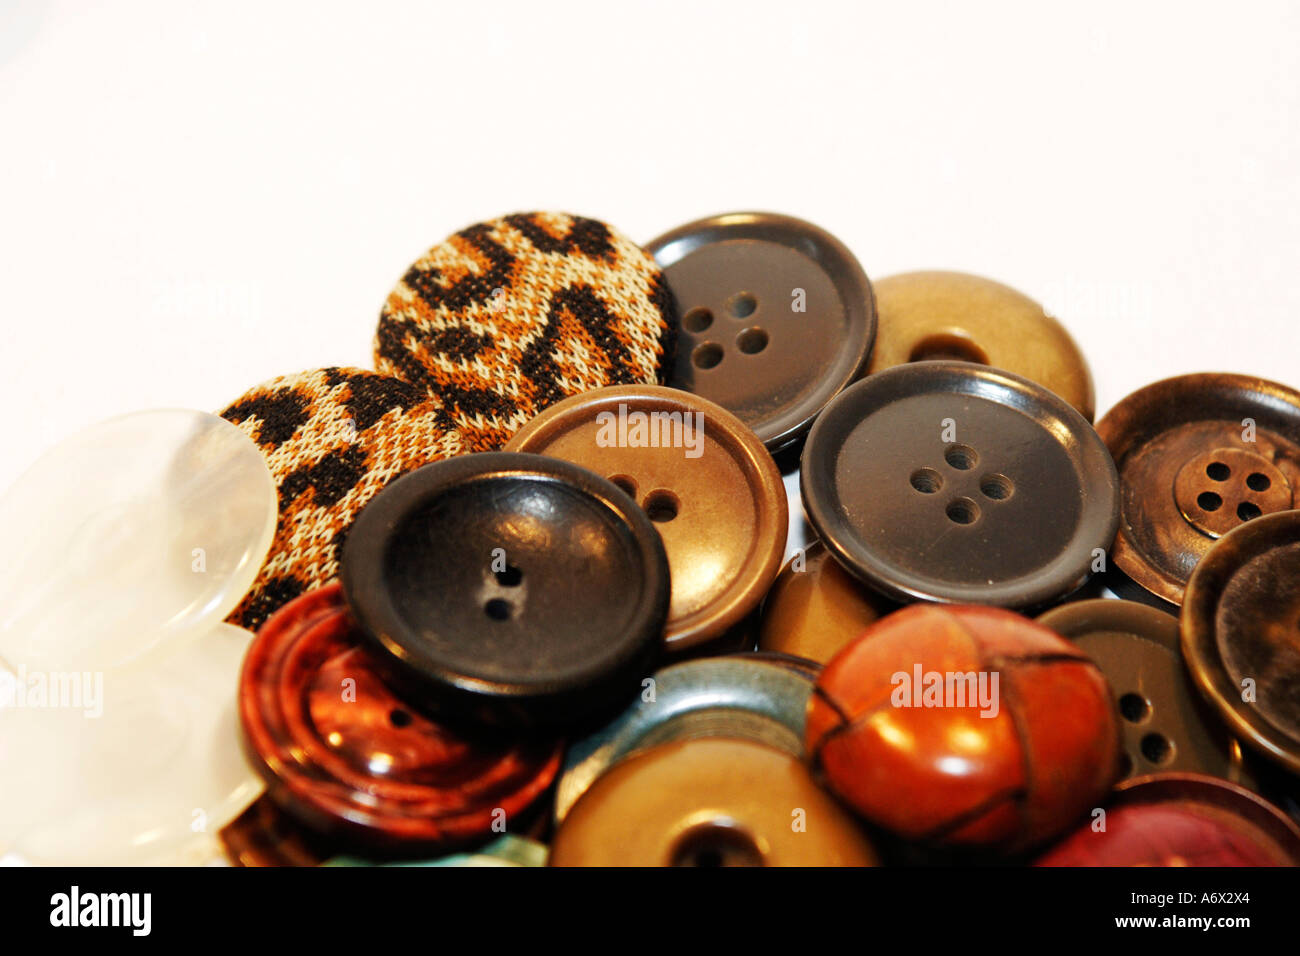 Multi-colored, Vast Selection of Buttons - Stock Image